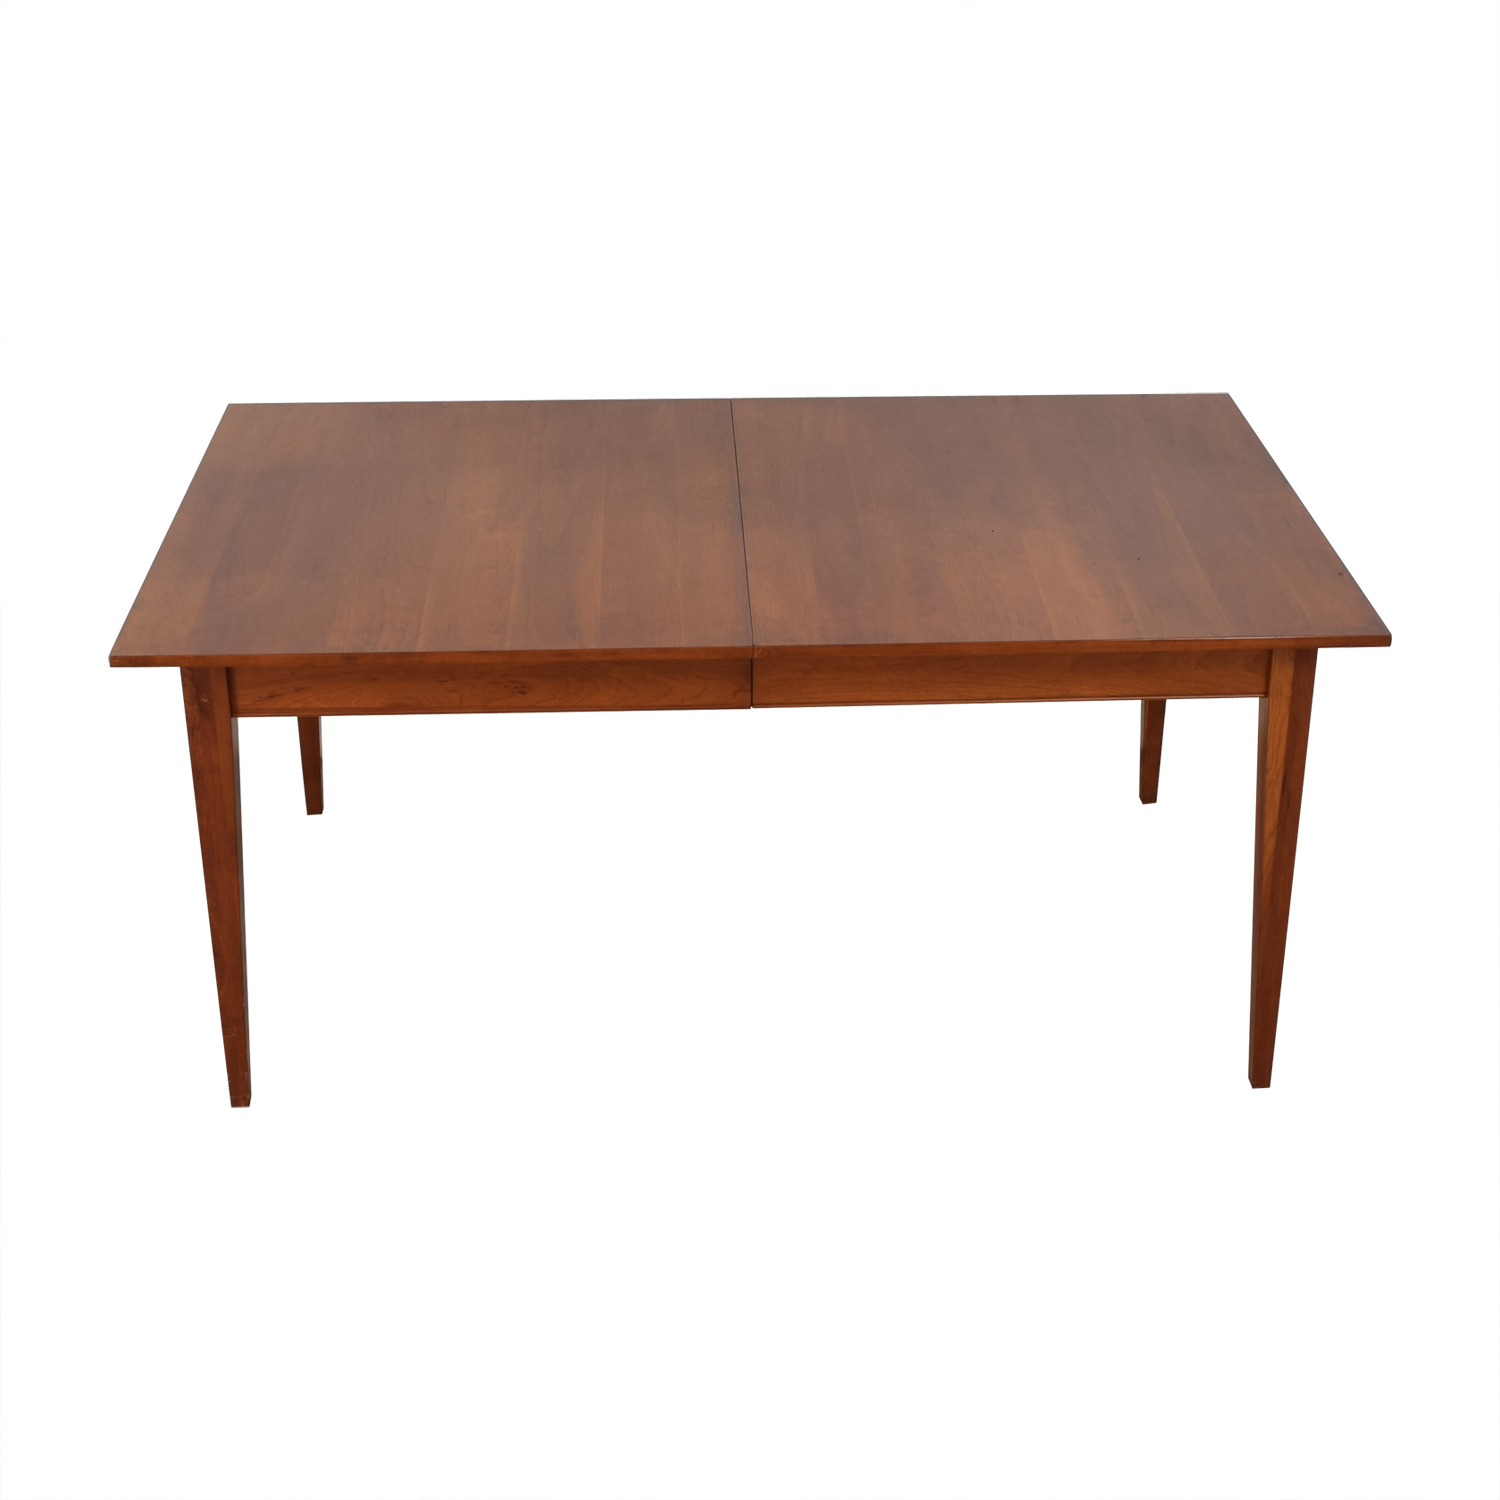 Ethan Allen New Impressions Mission Dining Table / Tables